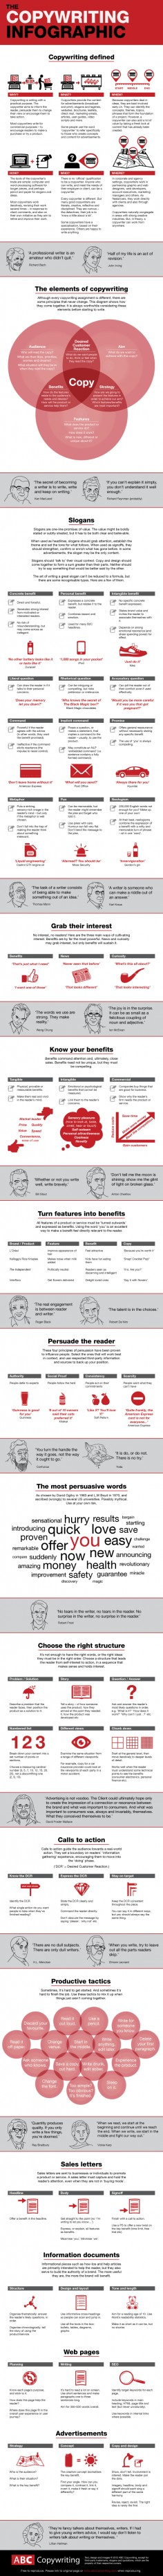 Copywriting Infographic